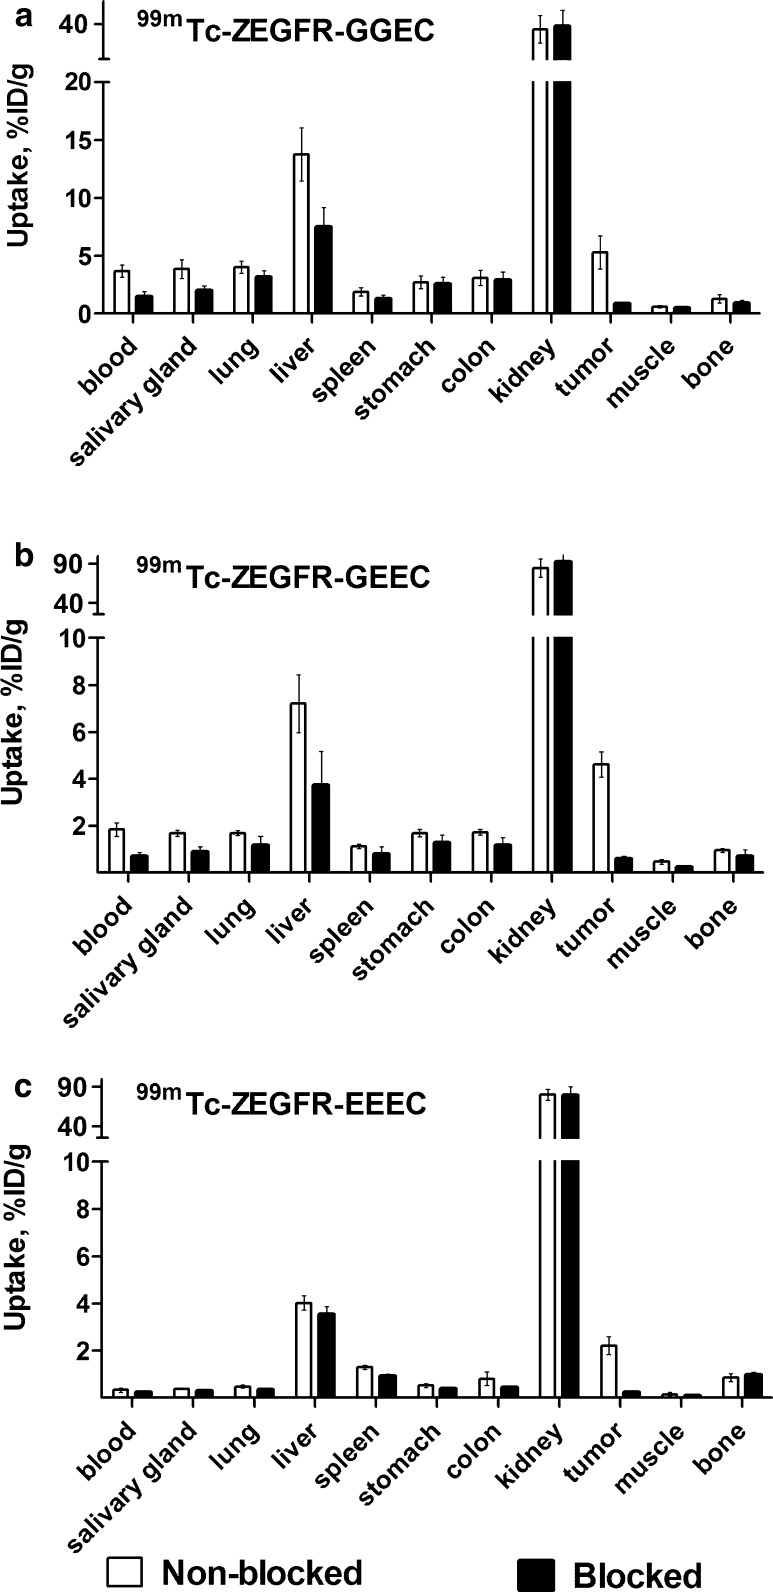 In vivo specificity of 99m Tc-ZEGFR conjugates ( a 99m Tc-ZEGFR-GGEC, b 99m Tc-ZEGFR-GEEC and c 99m Tc-ZEGFR-EEEC) in A431 xenografts and EGFR-expressing organs in mice at 6 h after injection. In the blocked group, receptors were saturated by pre-injection of large excess of anti-EGFR antibody cetuximab. The data are presented as the average ( n = 4) and SD